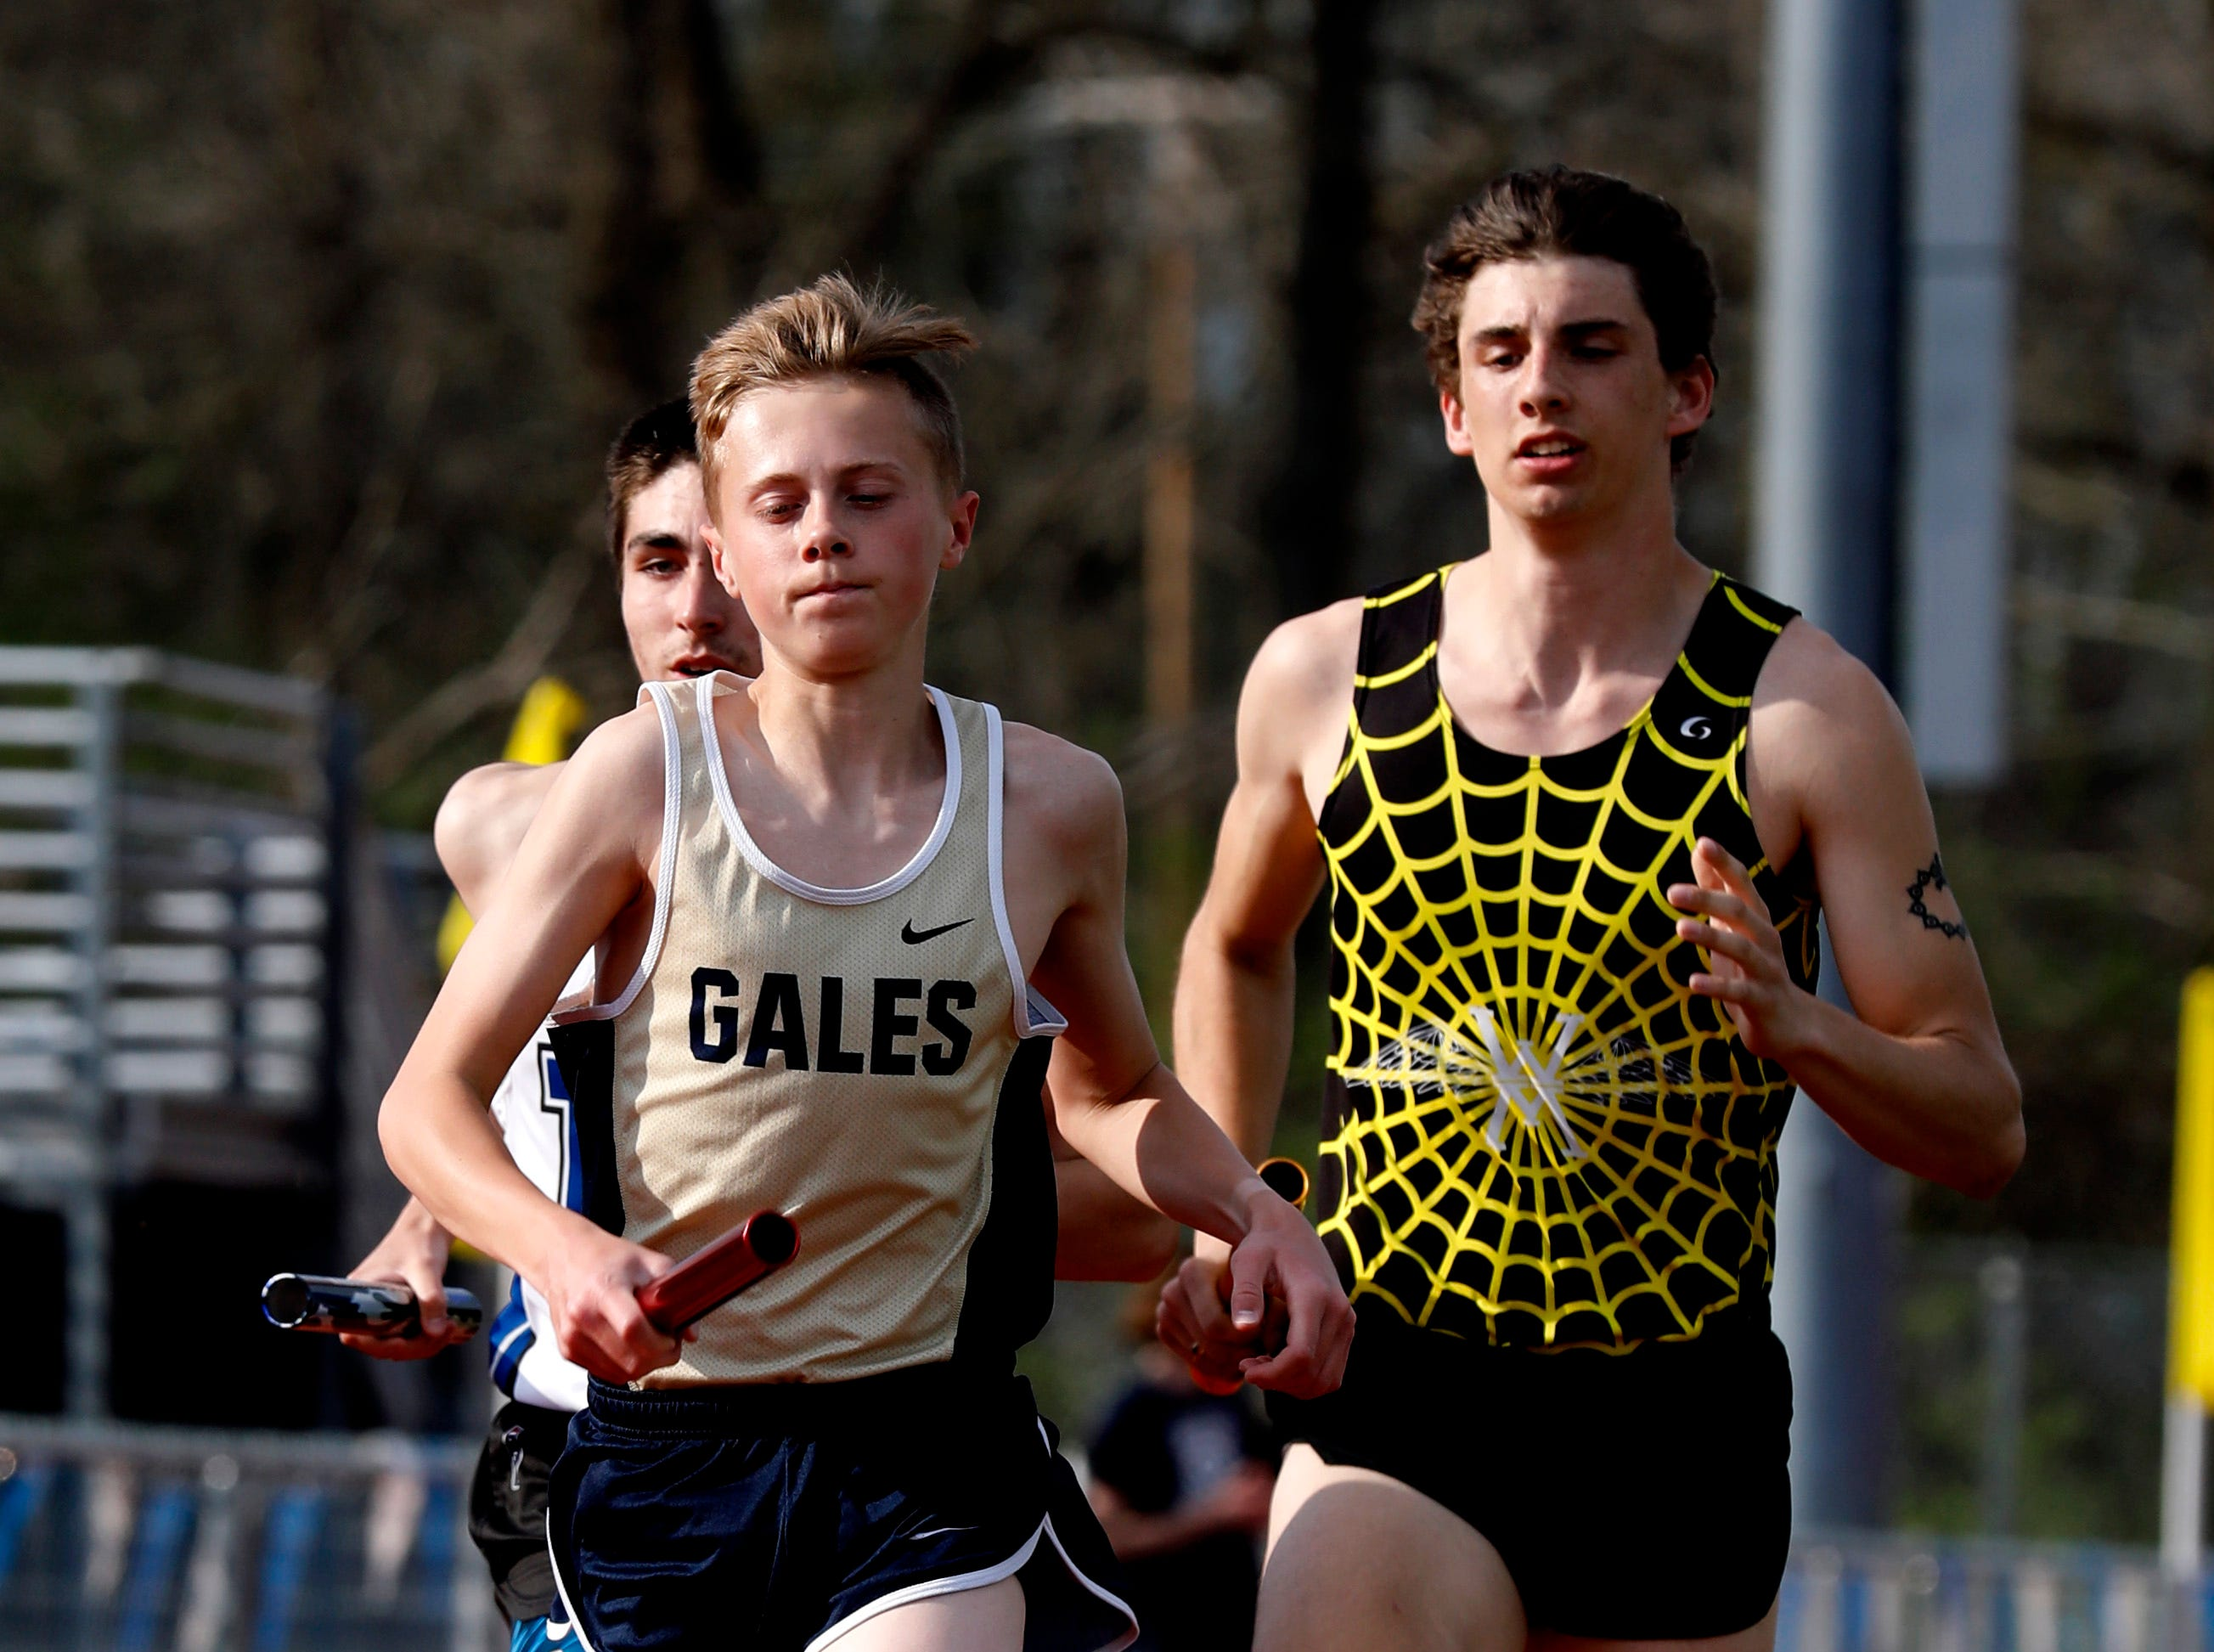 Lancaster's Nathan Craft runs in the 6400-meter relay Thursday night, April 18, 2019, during the Fulton Relays at Lancaster High School in Lancaster.